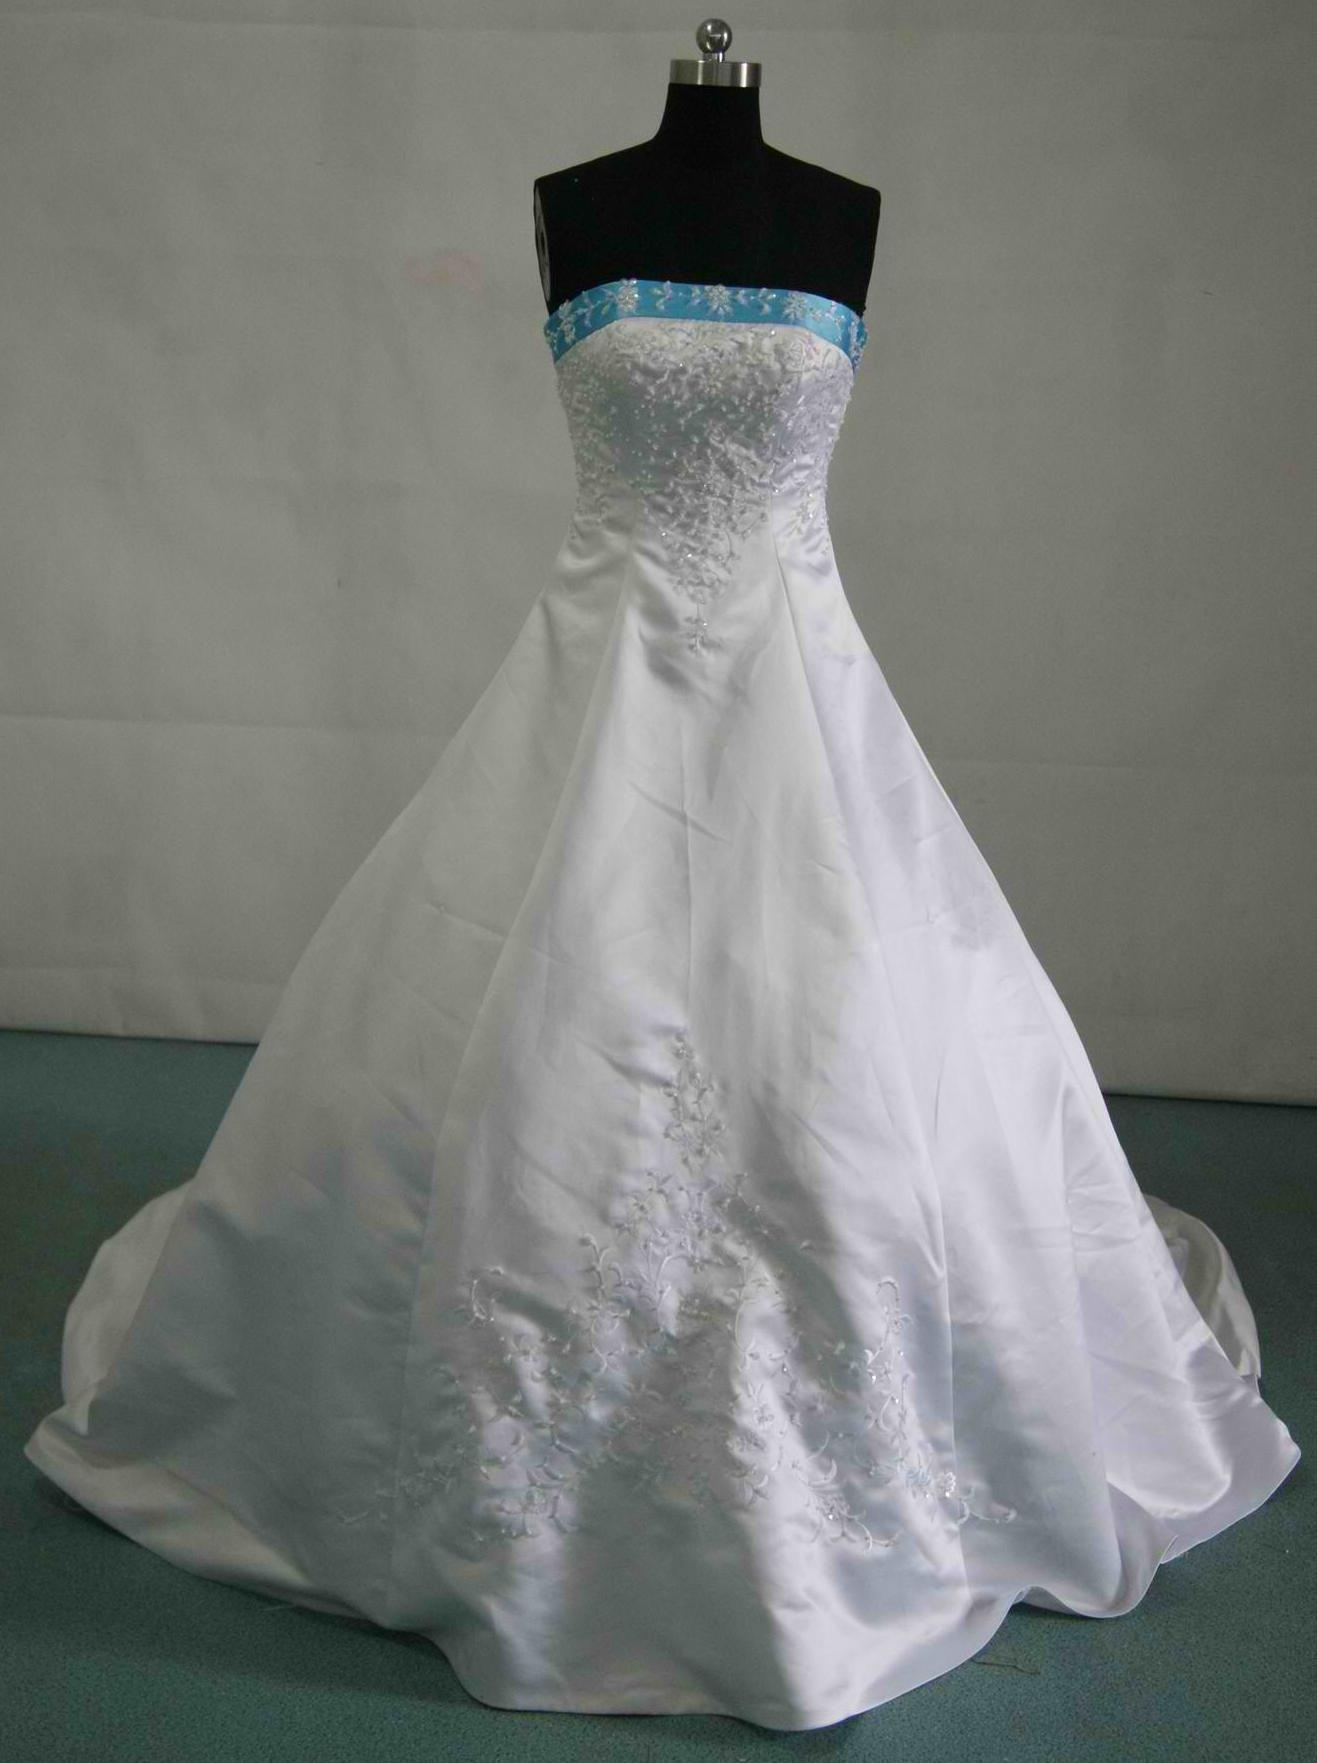 076a266e0 White and pool blue strapless wedding dress sale.